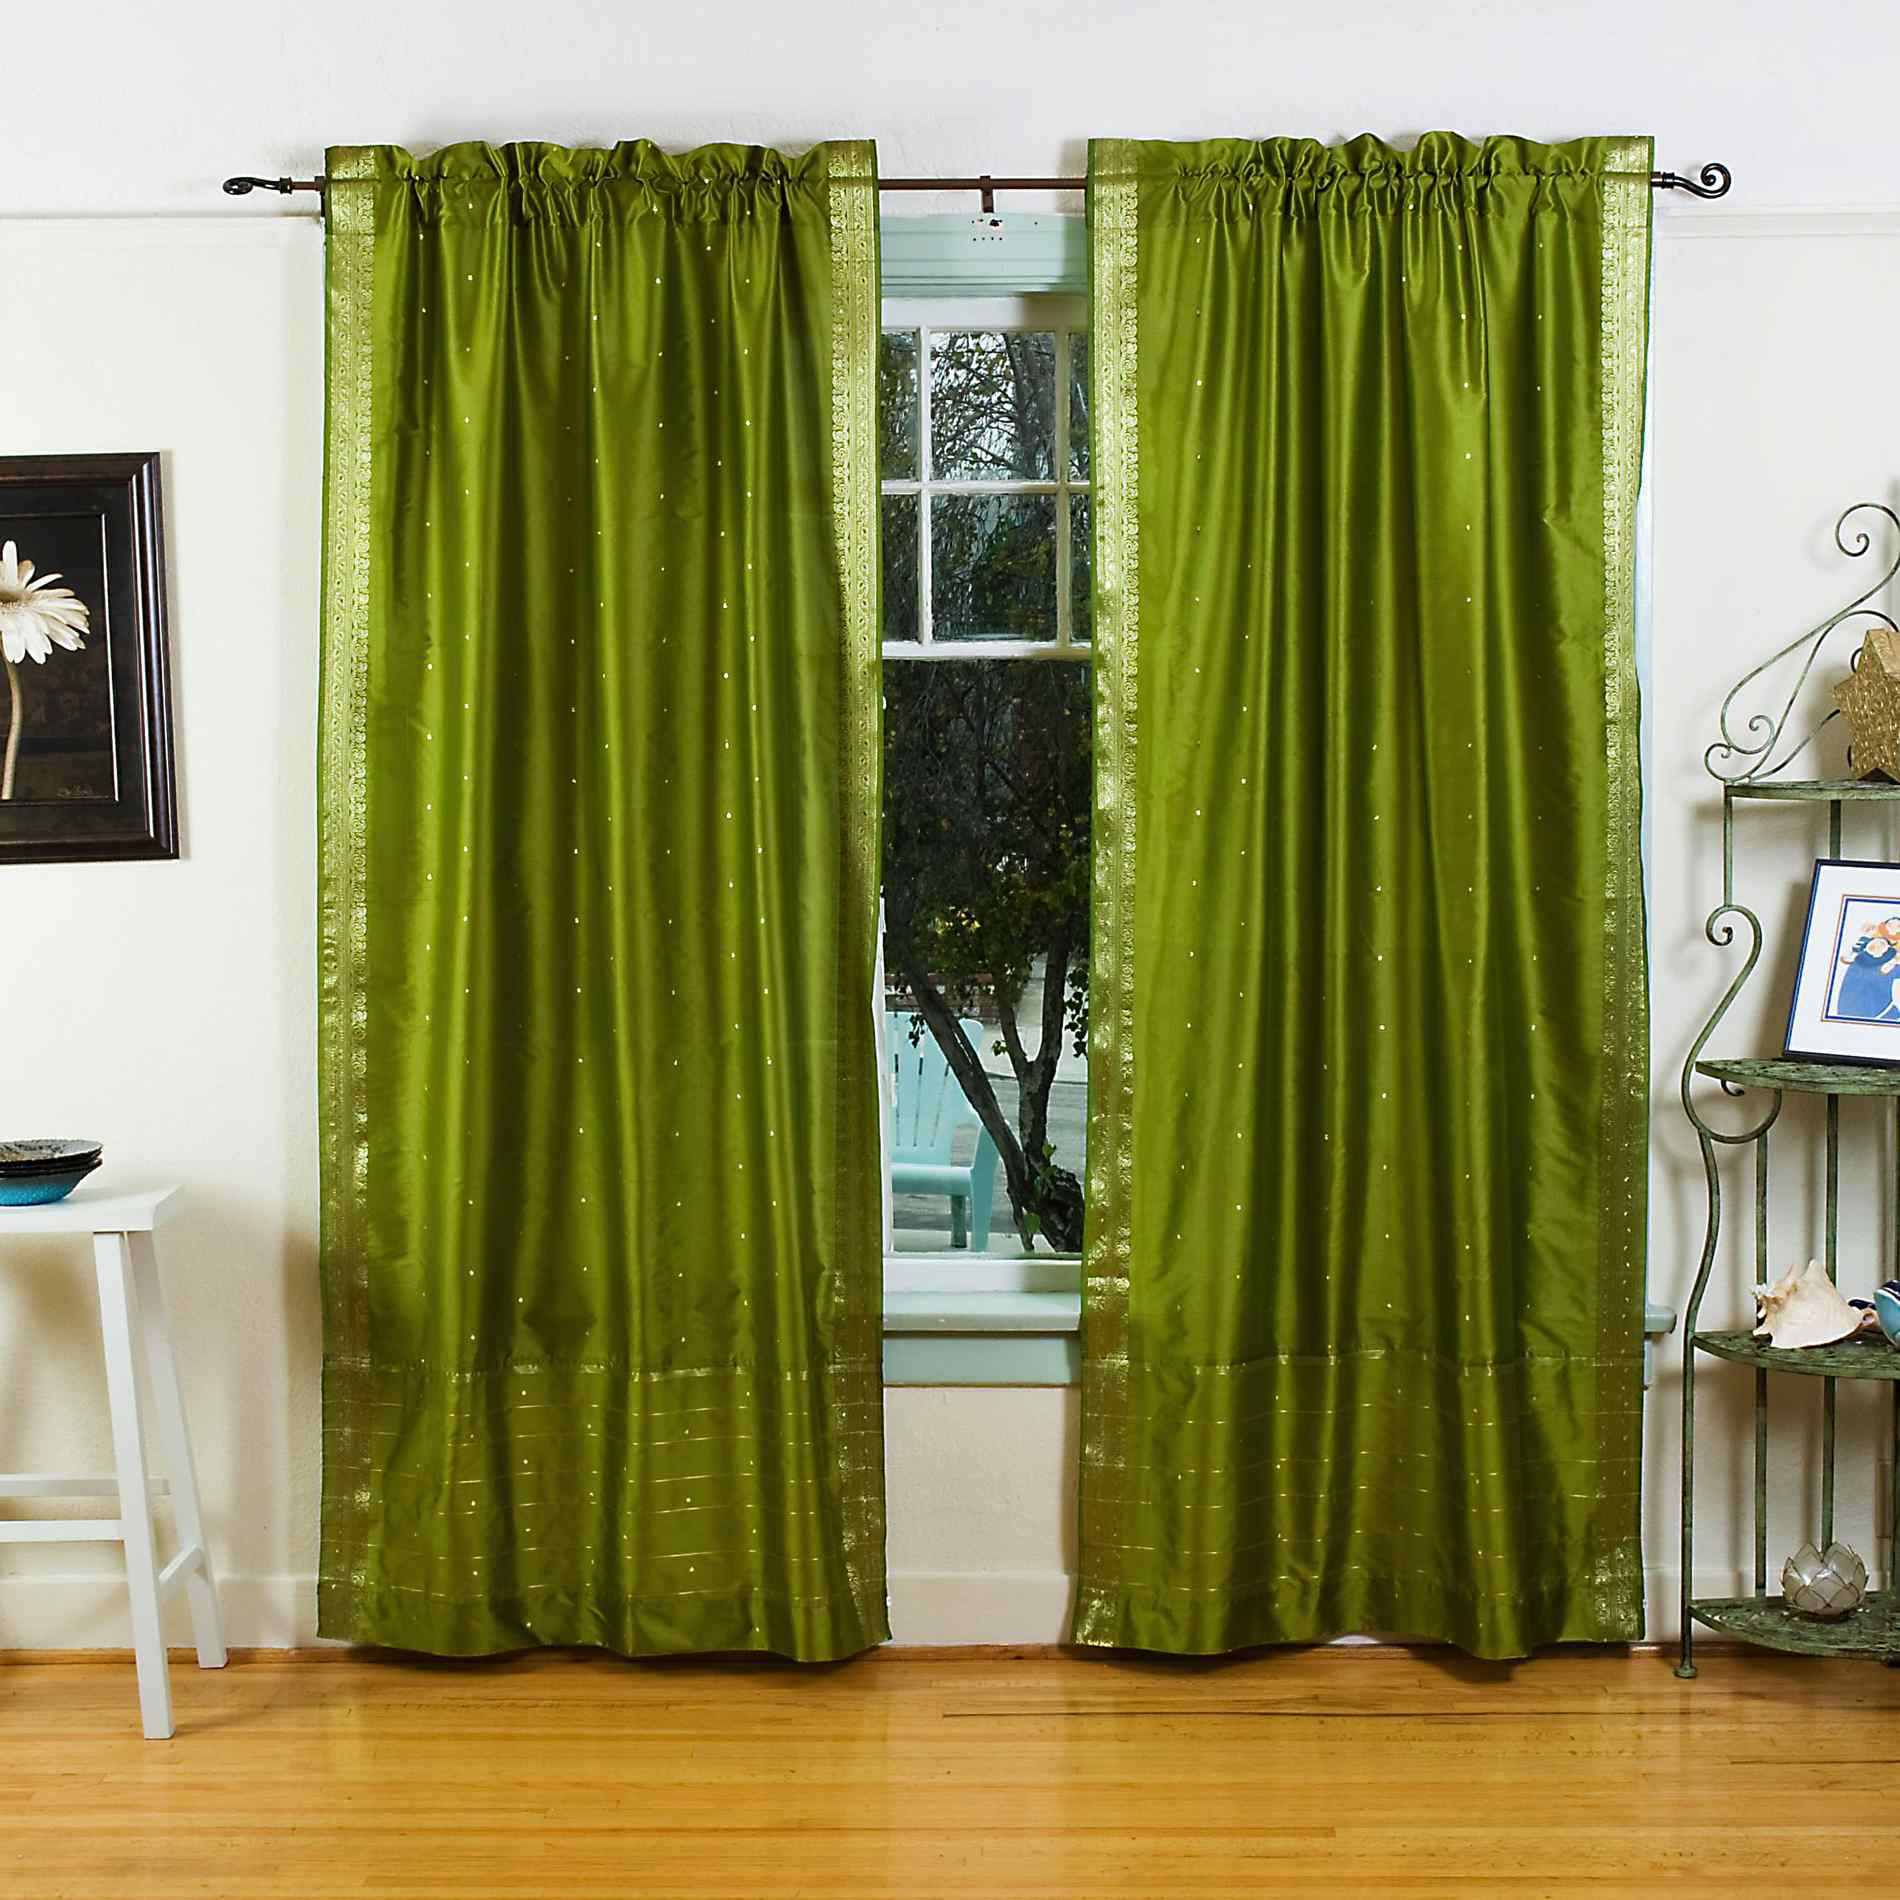 Olive Green Rod Pocket Sheer Sari Curtain Drape Panel